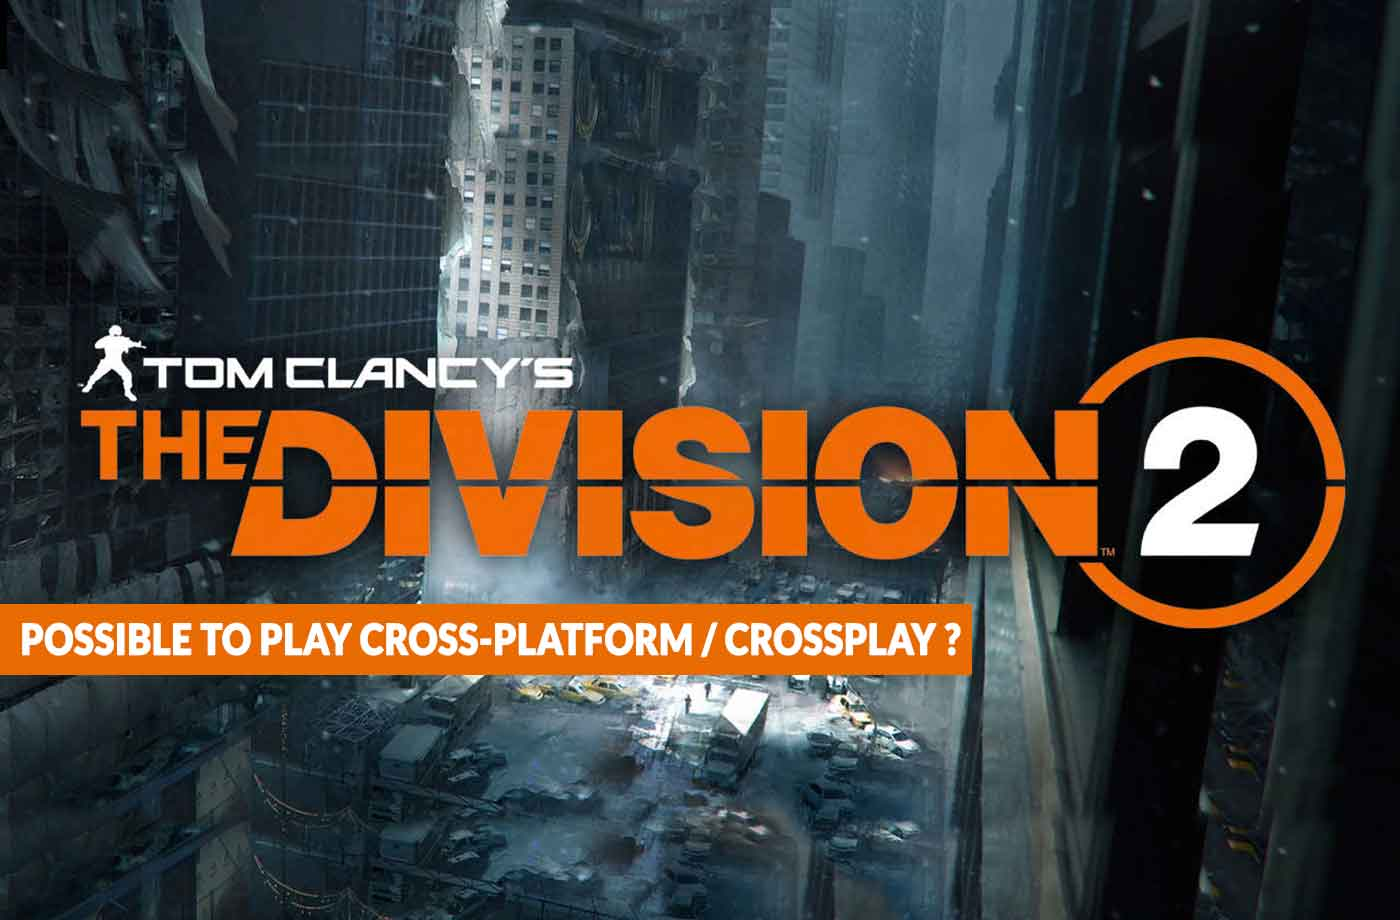 Wiki The Division 2 possible to play cross-platform between PC Xbox